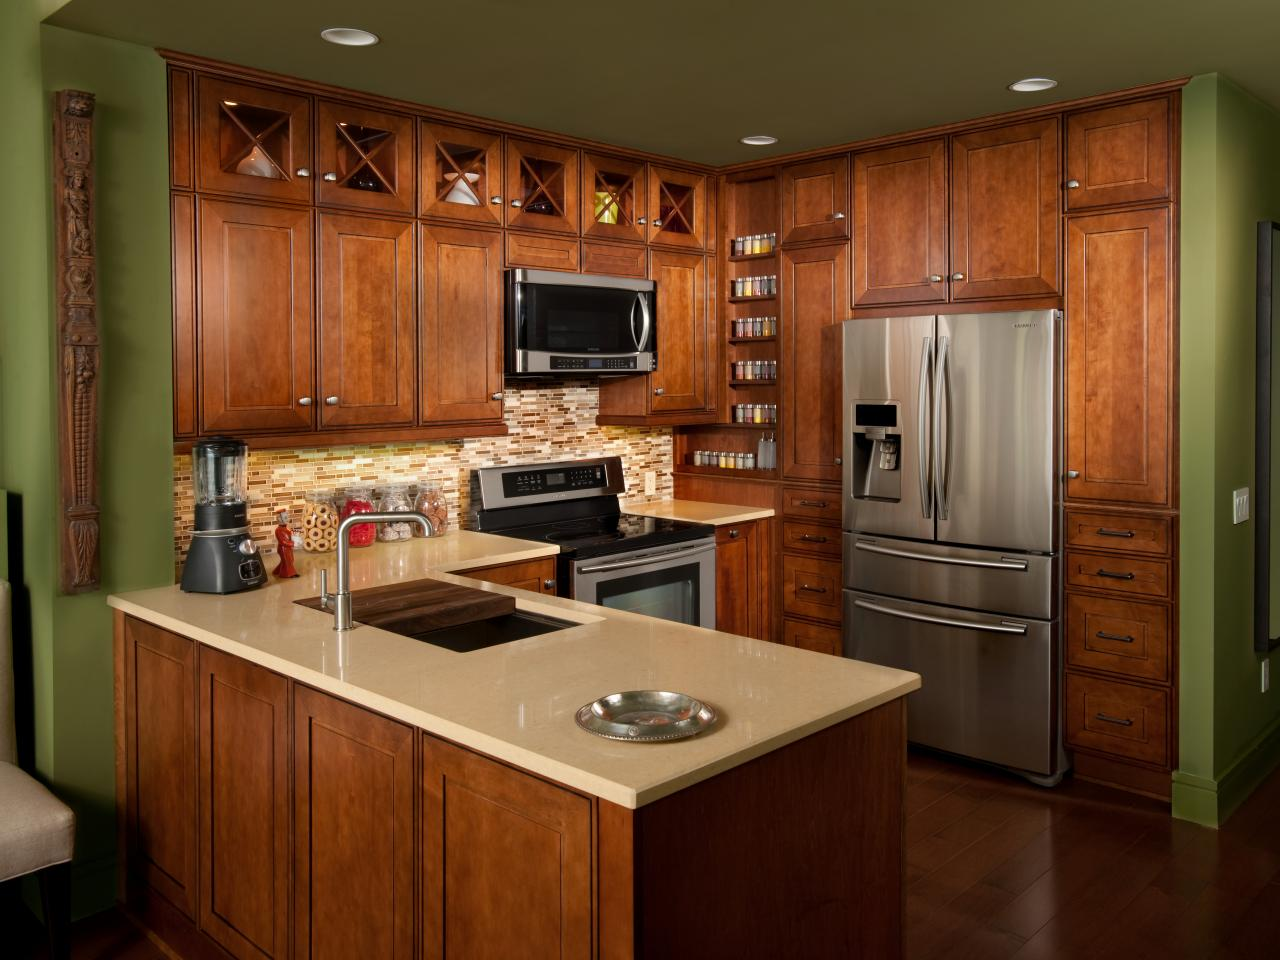 Ideas For Small Kitchen Cabinets Small Kitchen Island Ideas Pictures & Tips From Hgtv  Hgtv